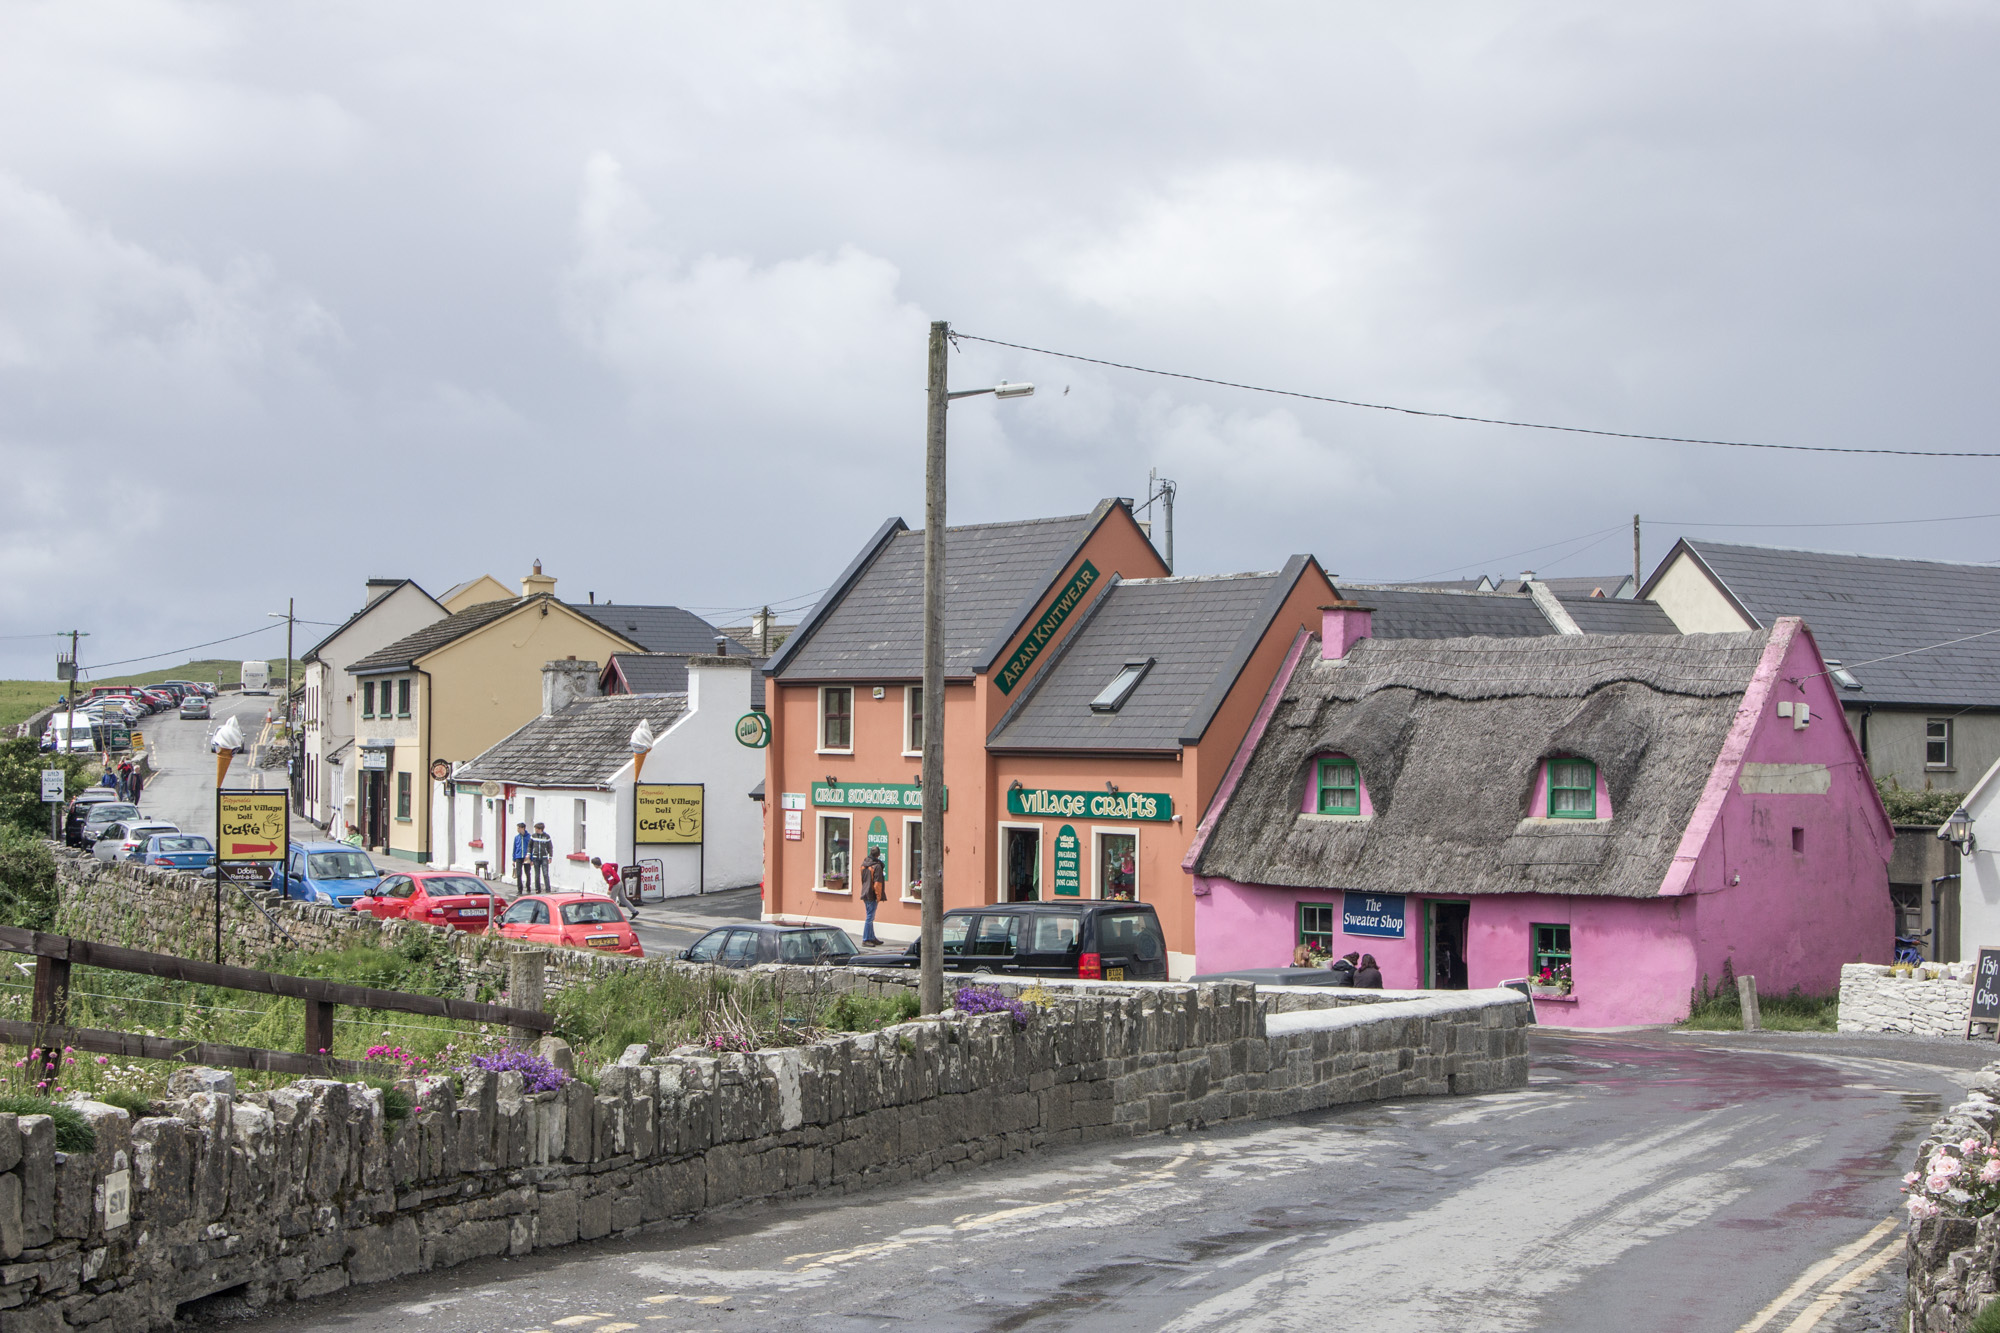 The main street in Doolin, Ireland has a pink, orange, and white buildings